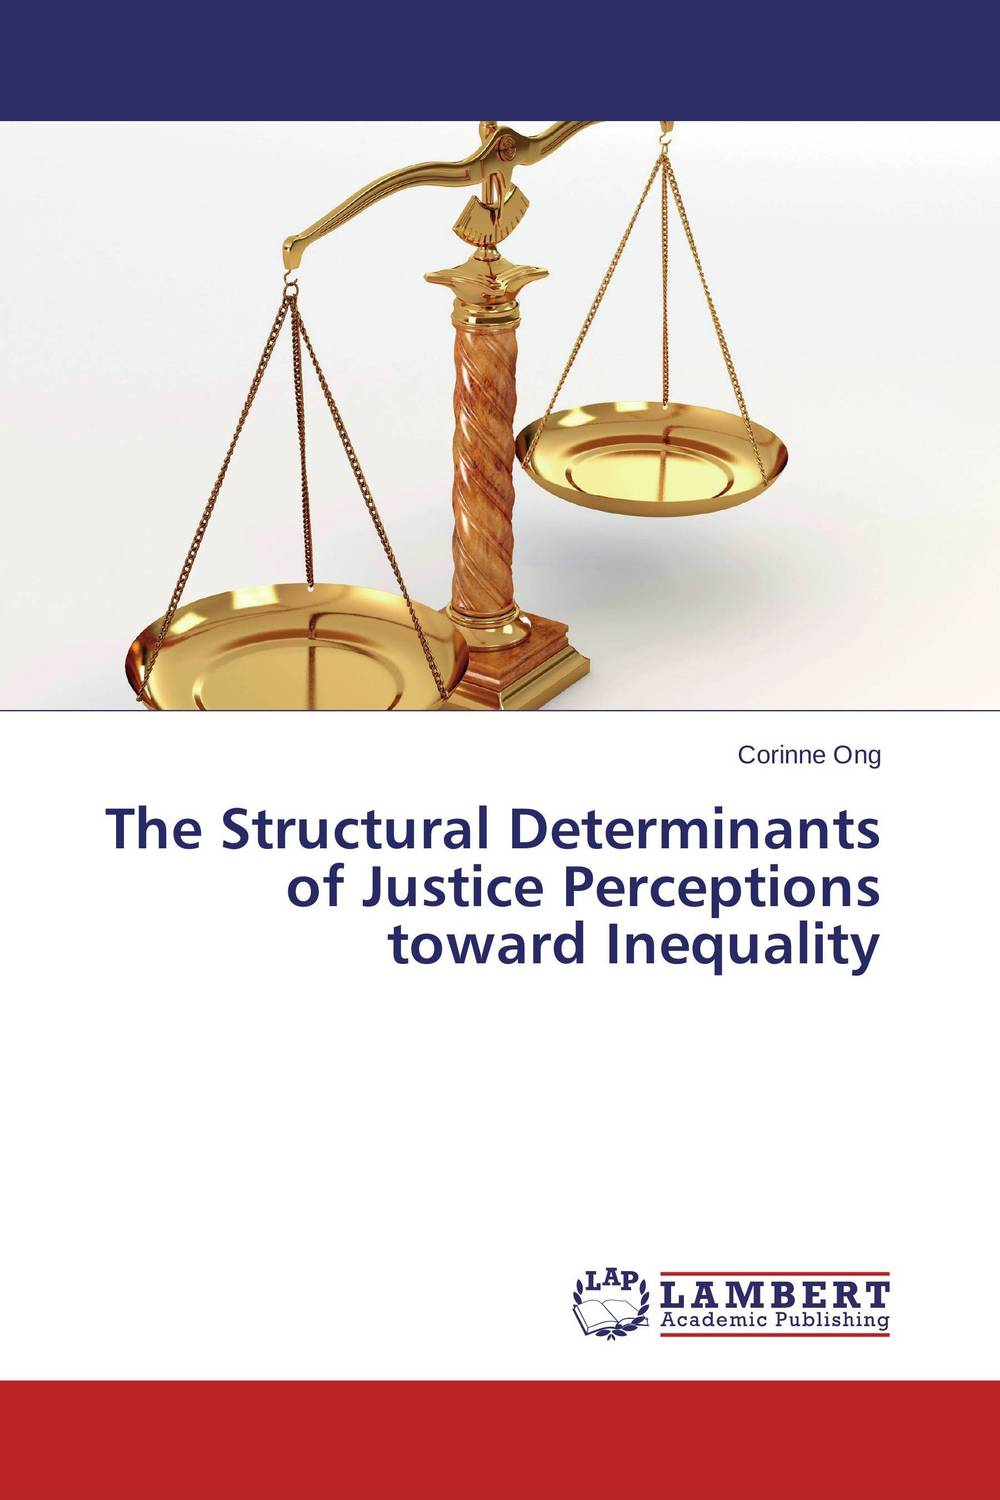 The Structural Determinants of Justice Perceptions toward Inequality bir pal singh social inequality and exclusion of scheduled tribes in india